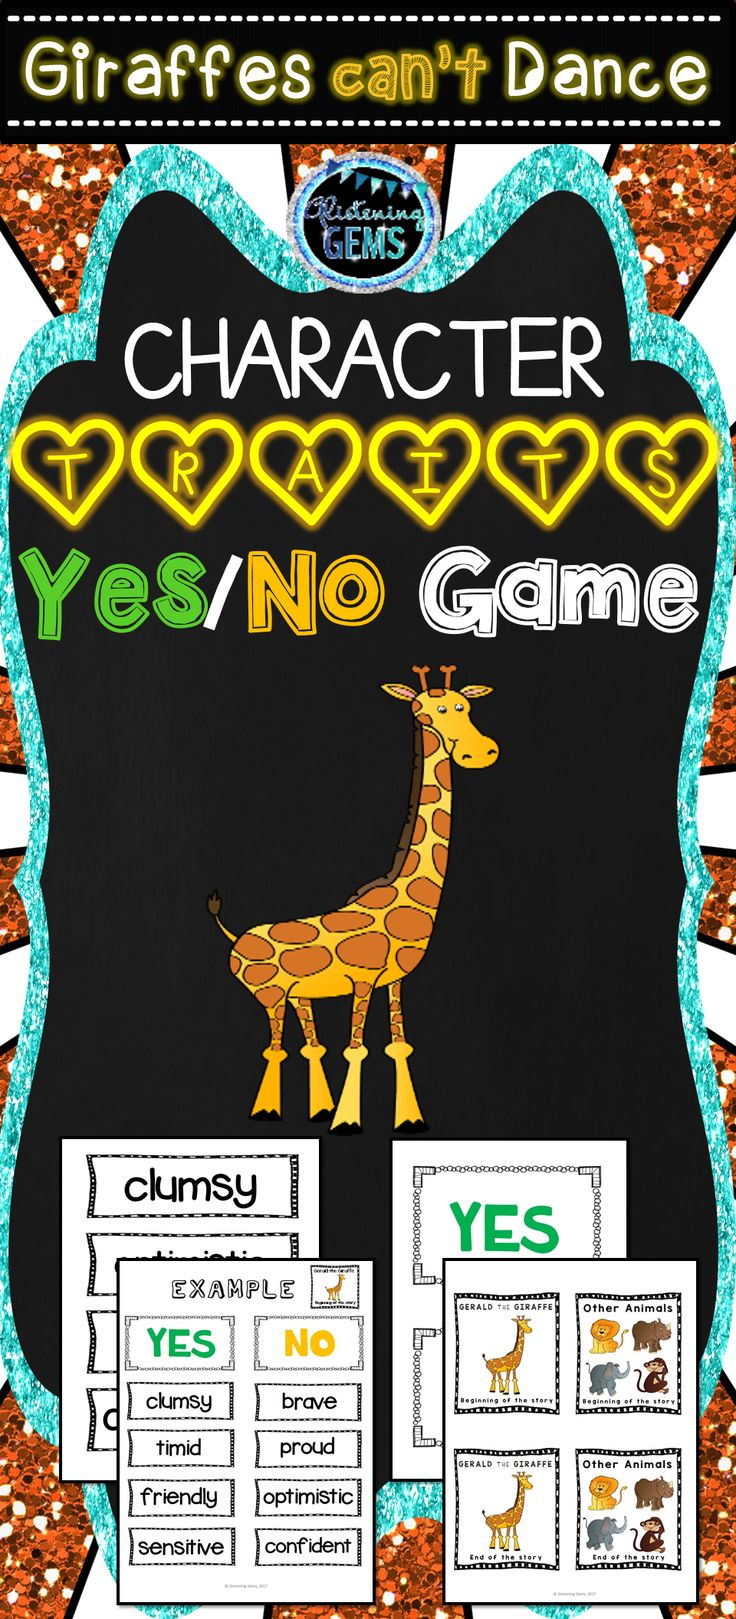 Giraffes Can't Dance - Character Traits Game. Fun and interactive game for the whole class to play or play in pairs of a small group.